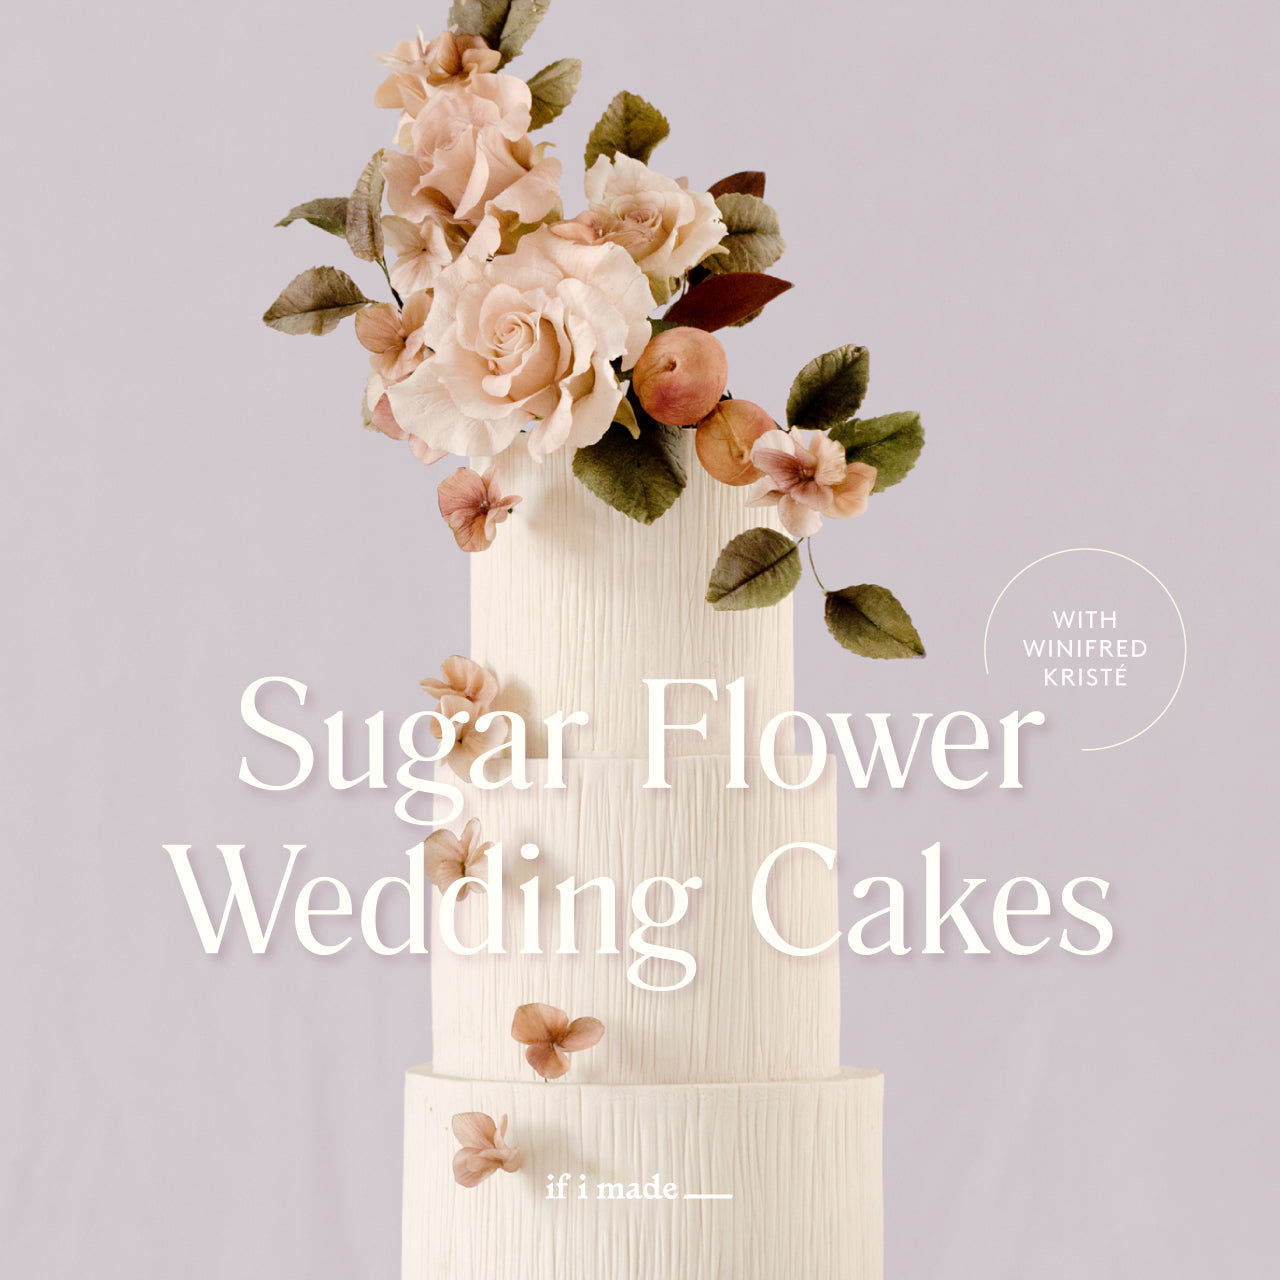 Extended Payment Plan Sale: Sugar Flower Wedding Cakes with Winifred Kriste - 19 Payments of $69